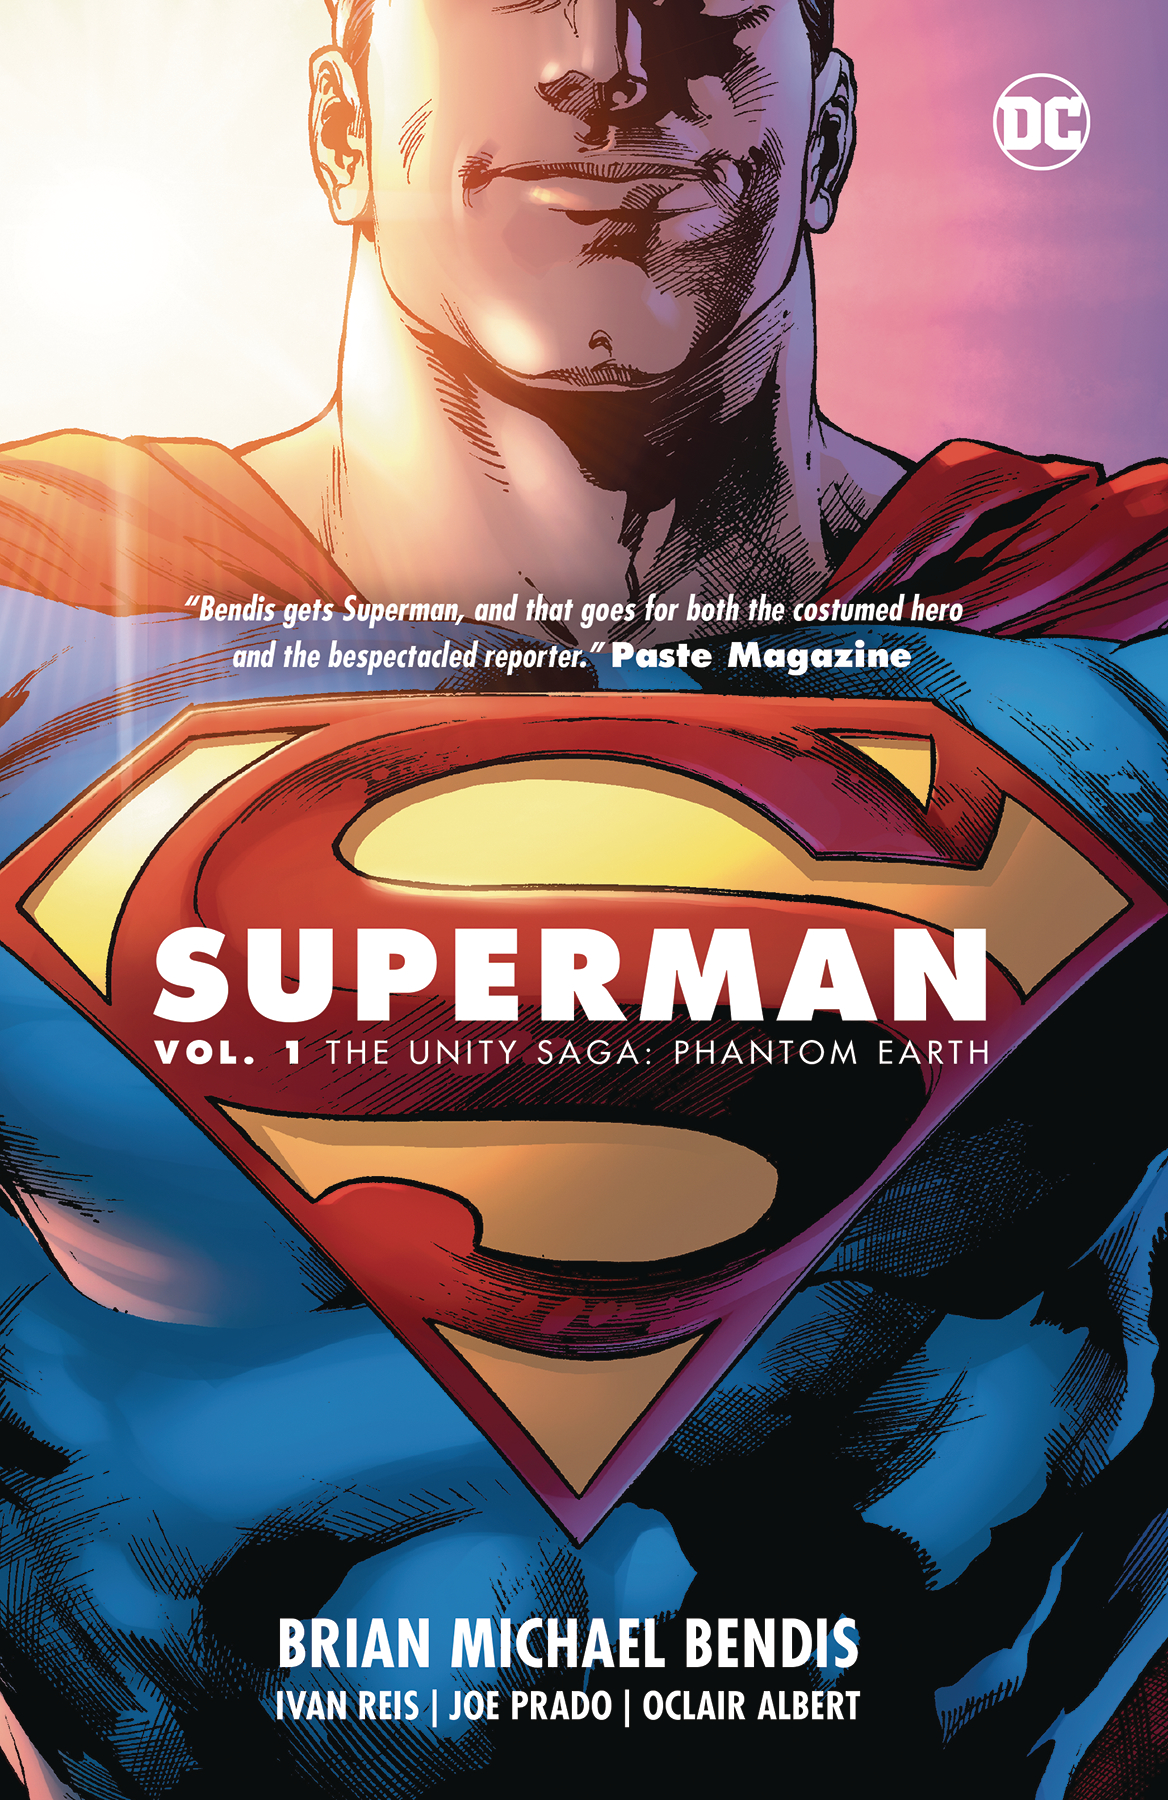 SUPERMAN TP VOL 01 THE UNITY SAGA PHANTOM EARTH